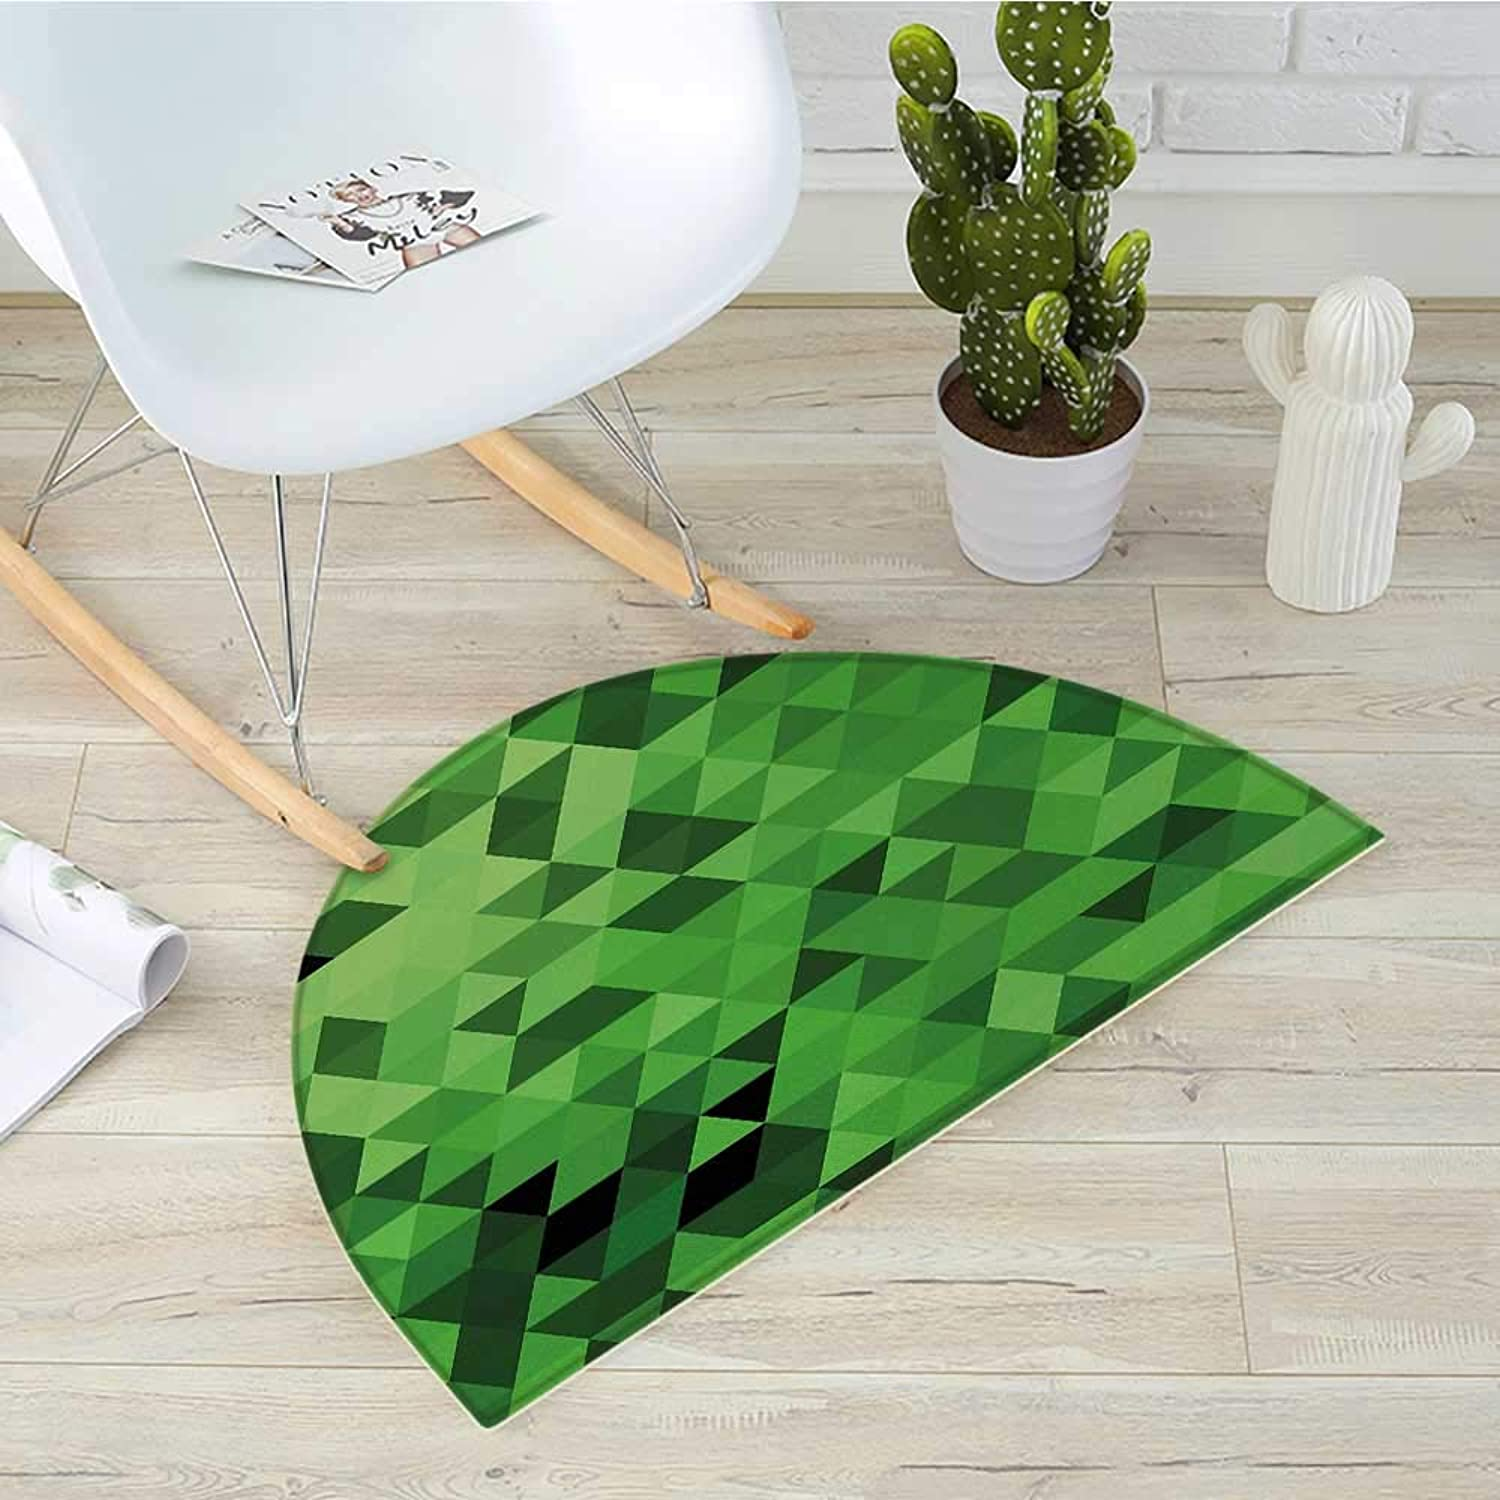 Green Semicircular CushionTriangles in Green Shades Abstract Modern Mosaic Pattern with Fractal Look Entry Door Mat H 39.3  xD 59  Dark Green Pale Green